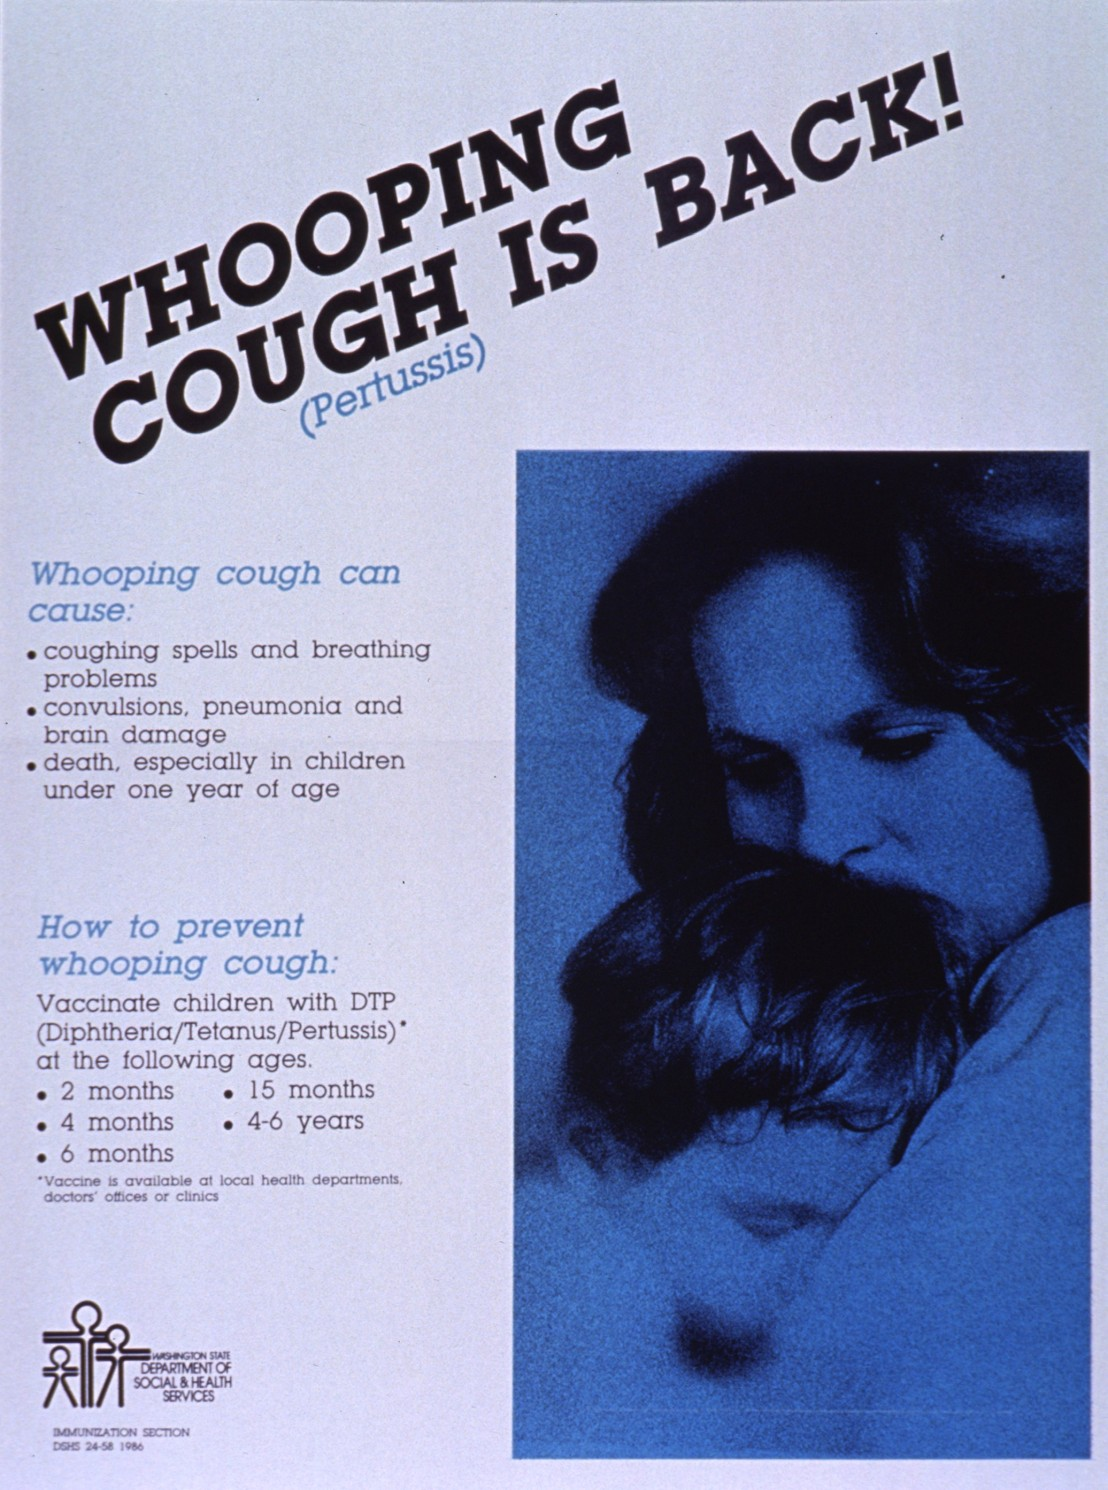 Whooping cough is back!